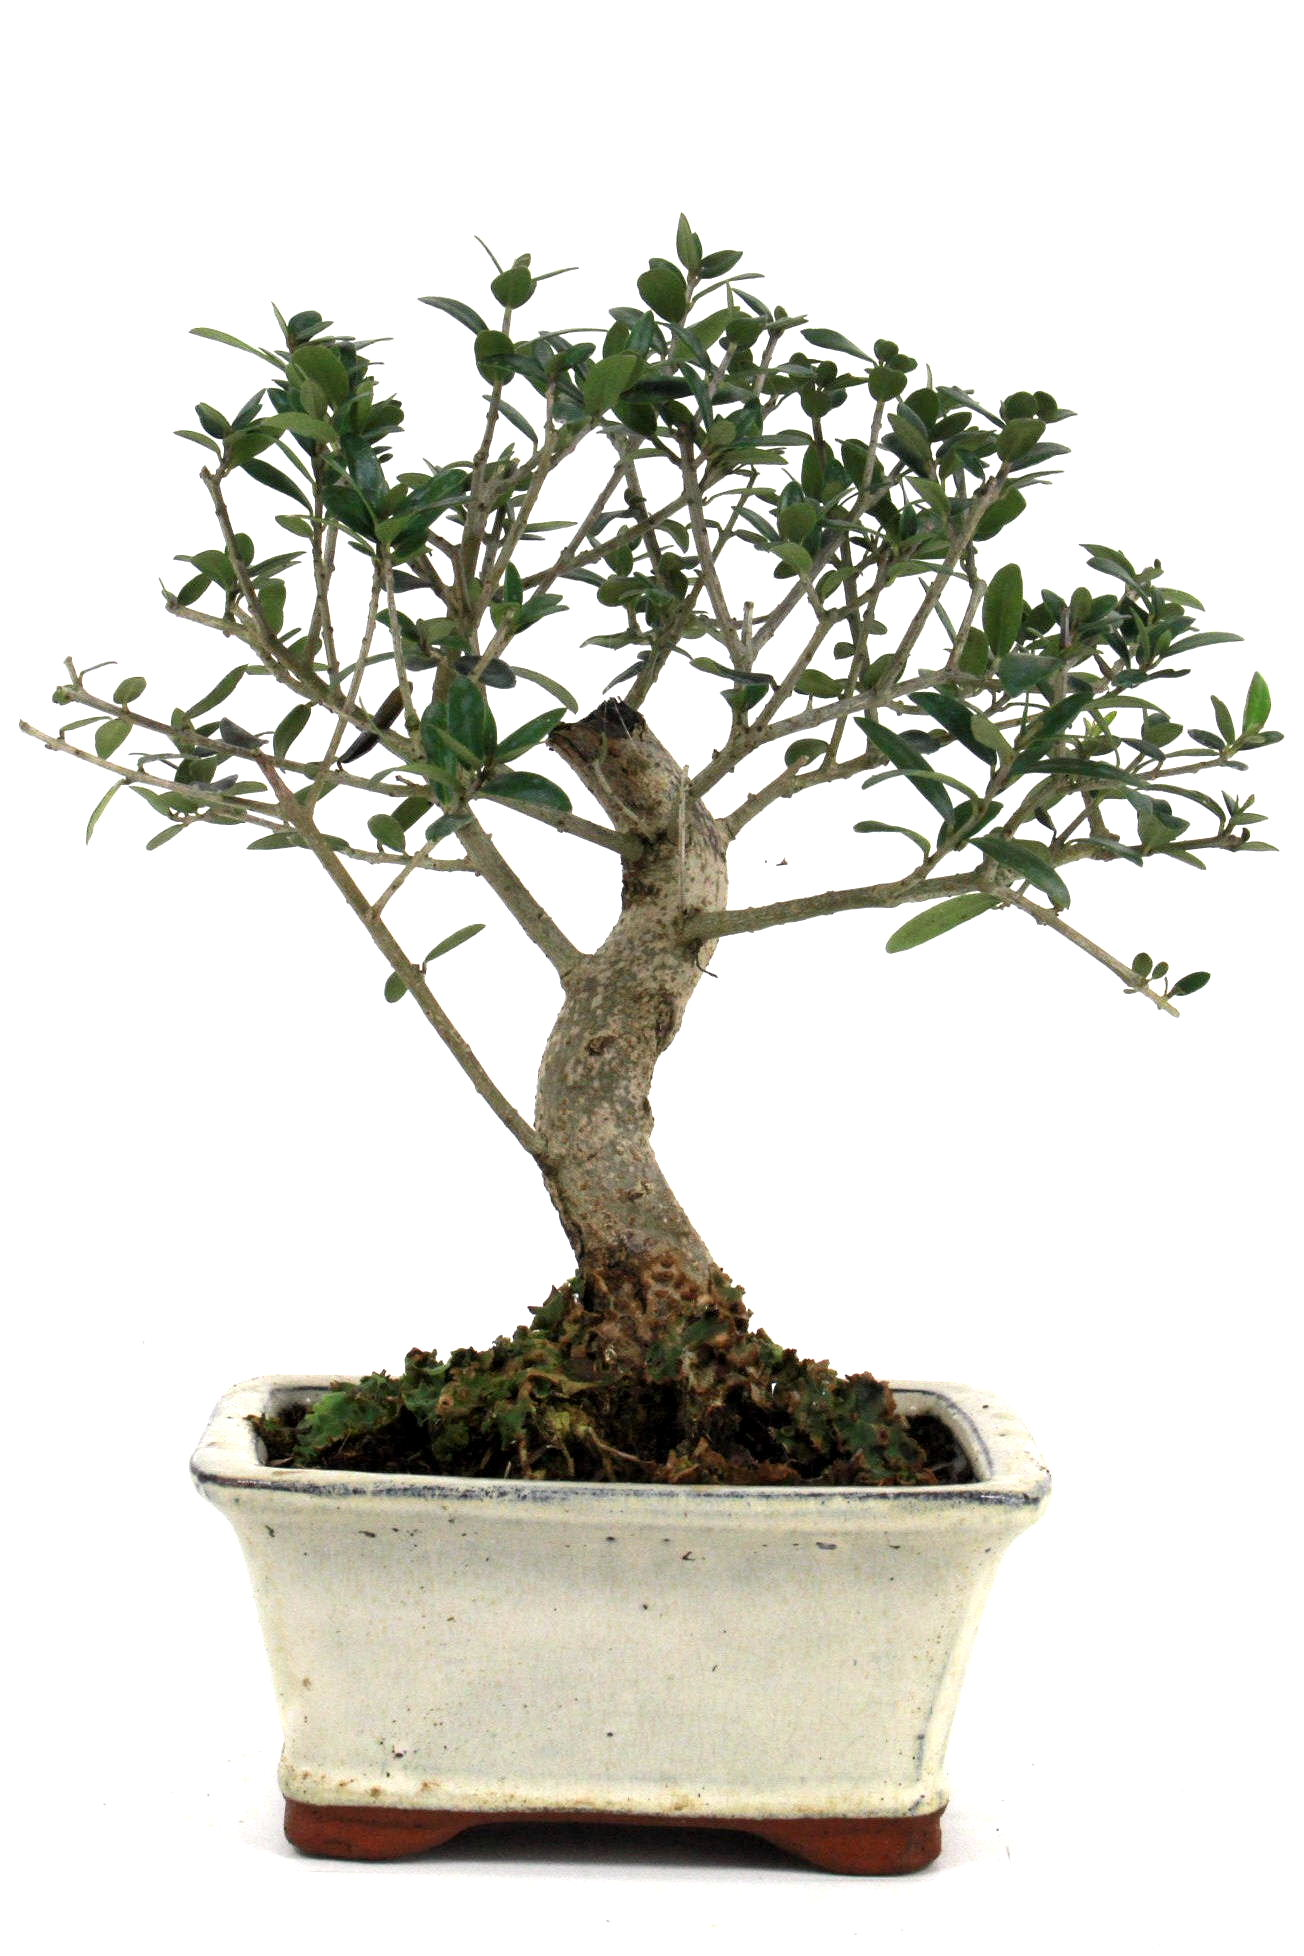 Wild olive bonsai aus spanien 30 cm 1616 bei oyaki bonsai for Bonsai onlineshop